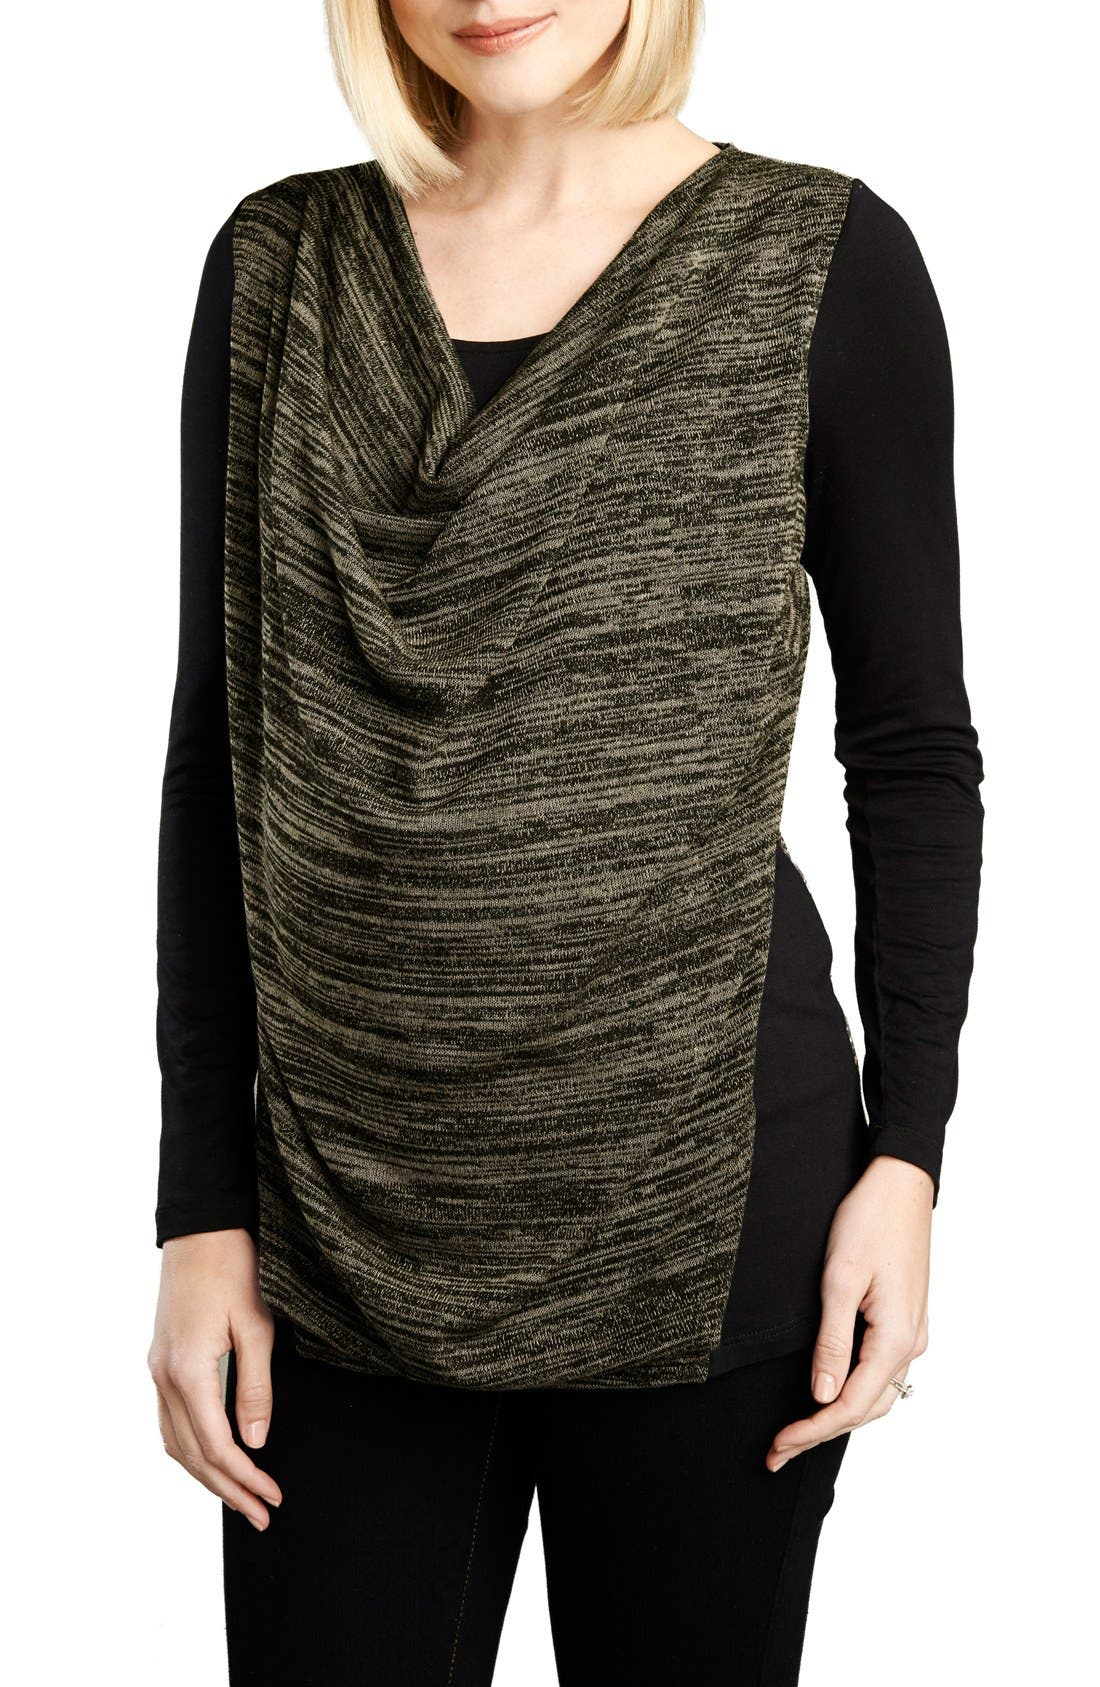 Cowl Neck Nursing Top,                         Main,                         color, BLACK/OLIVE SPACE DYE